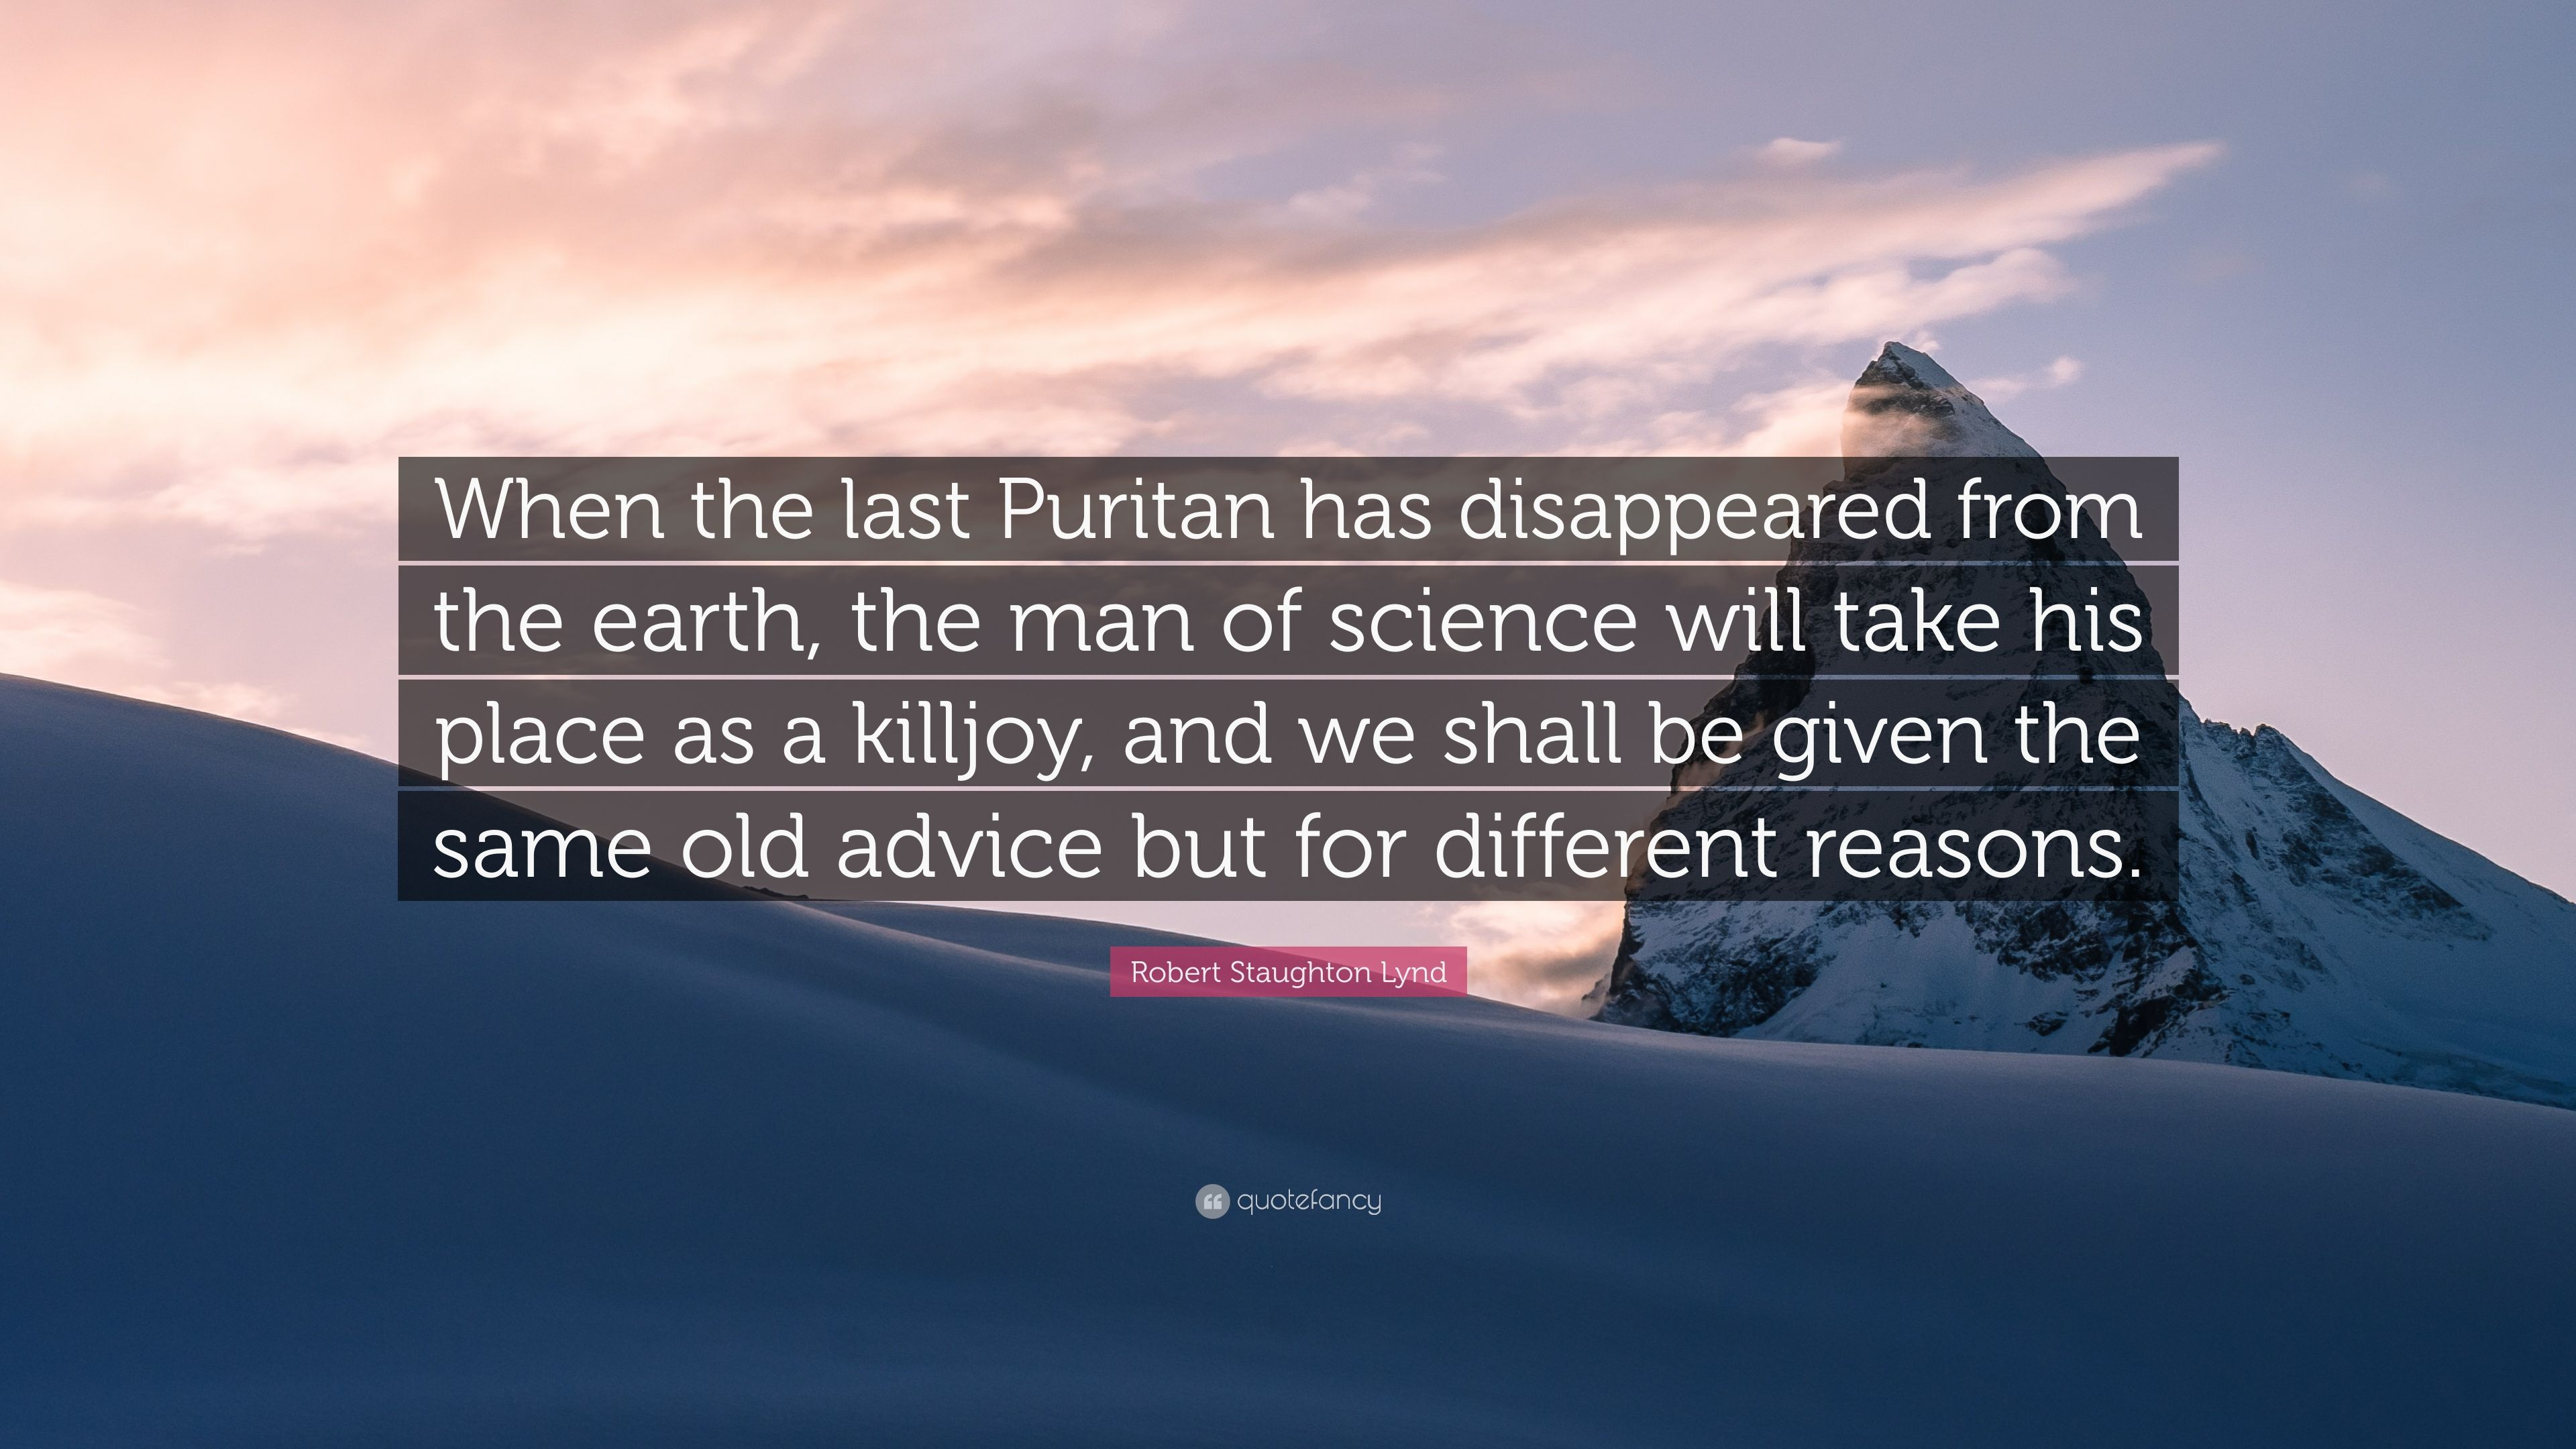 Puritan Quotes Robert Staughton Lynd Quotes